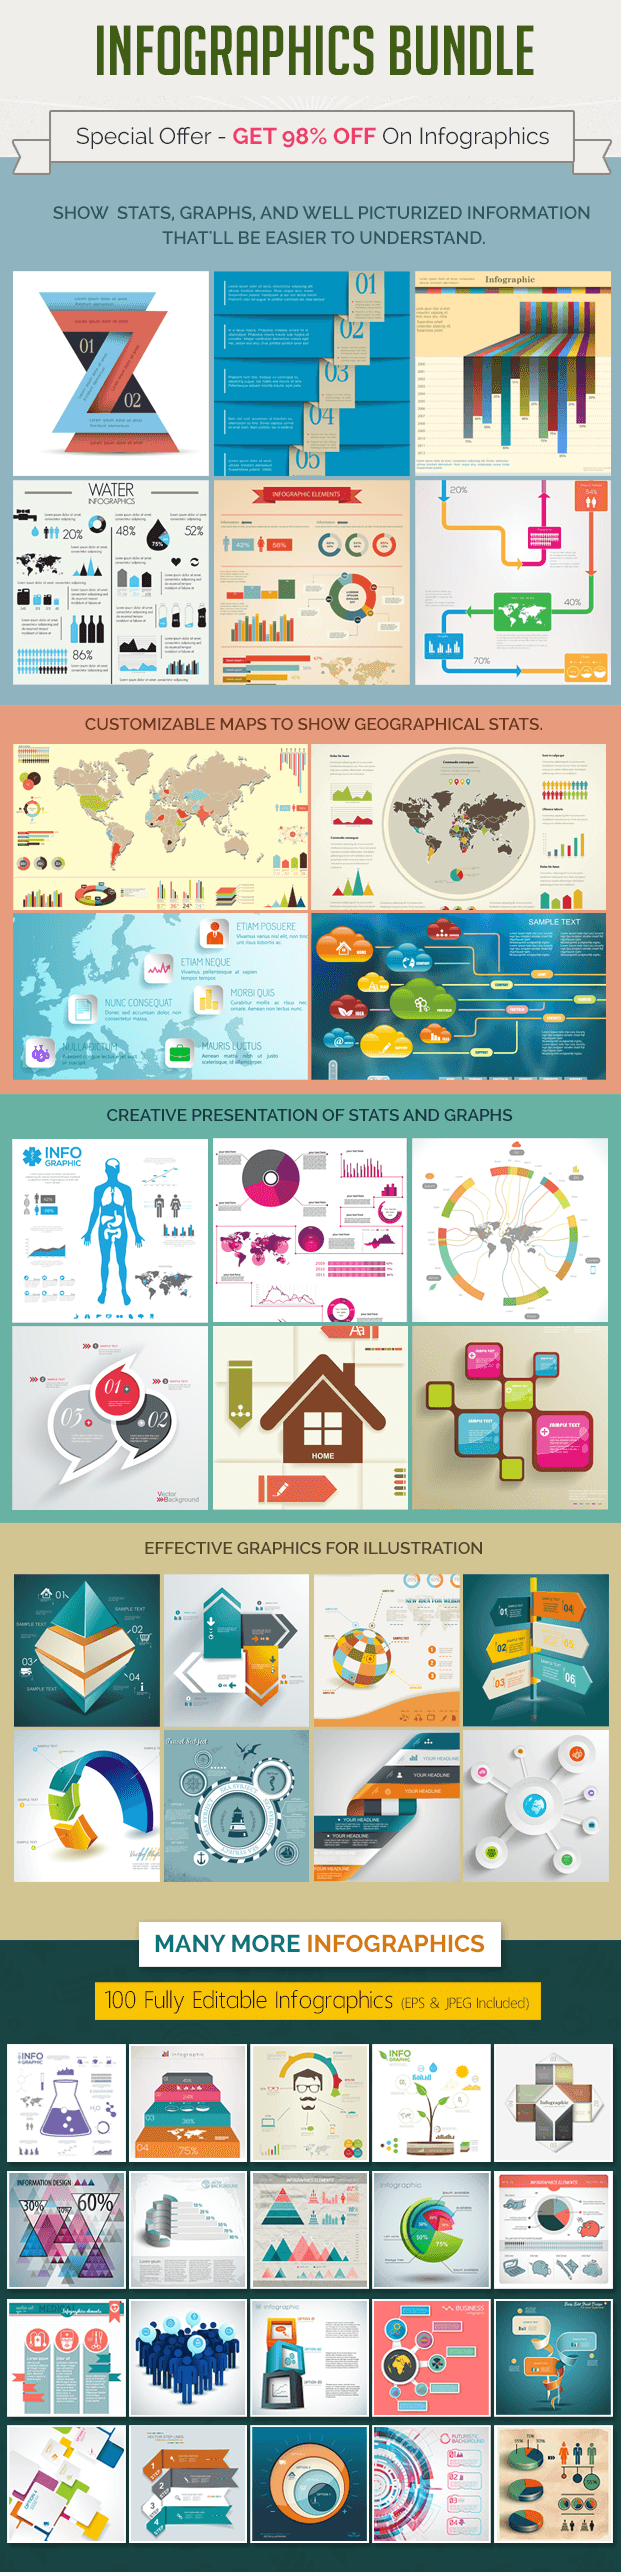 infographics bundle - maps, illustrative graphics, signs and